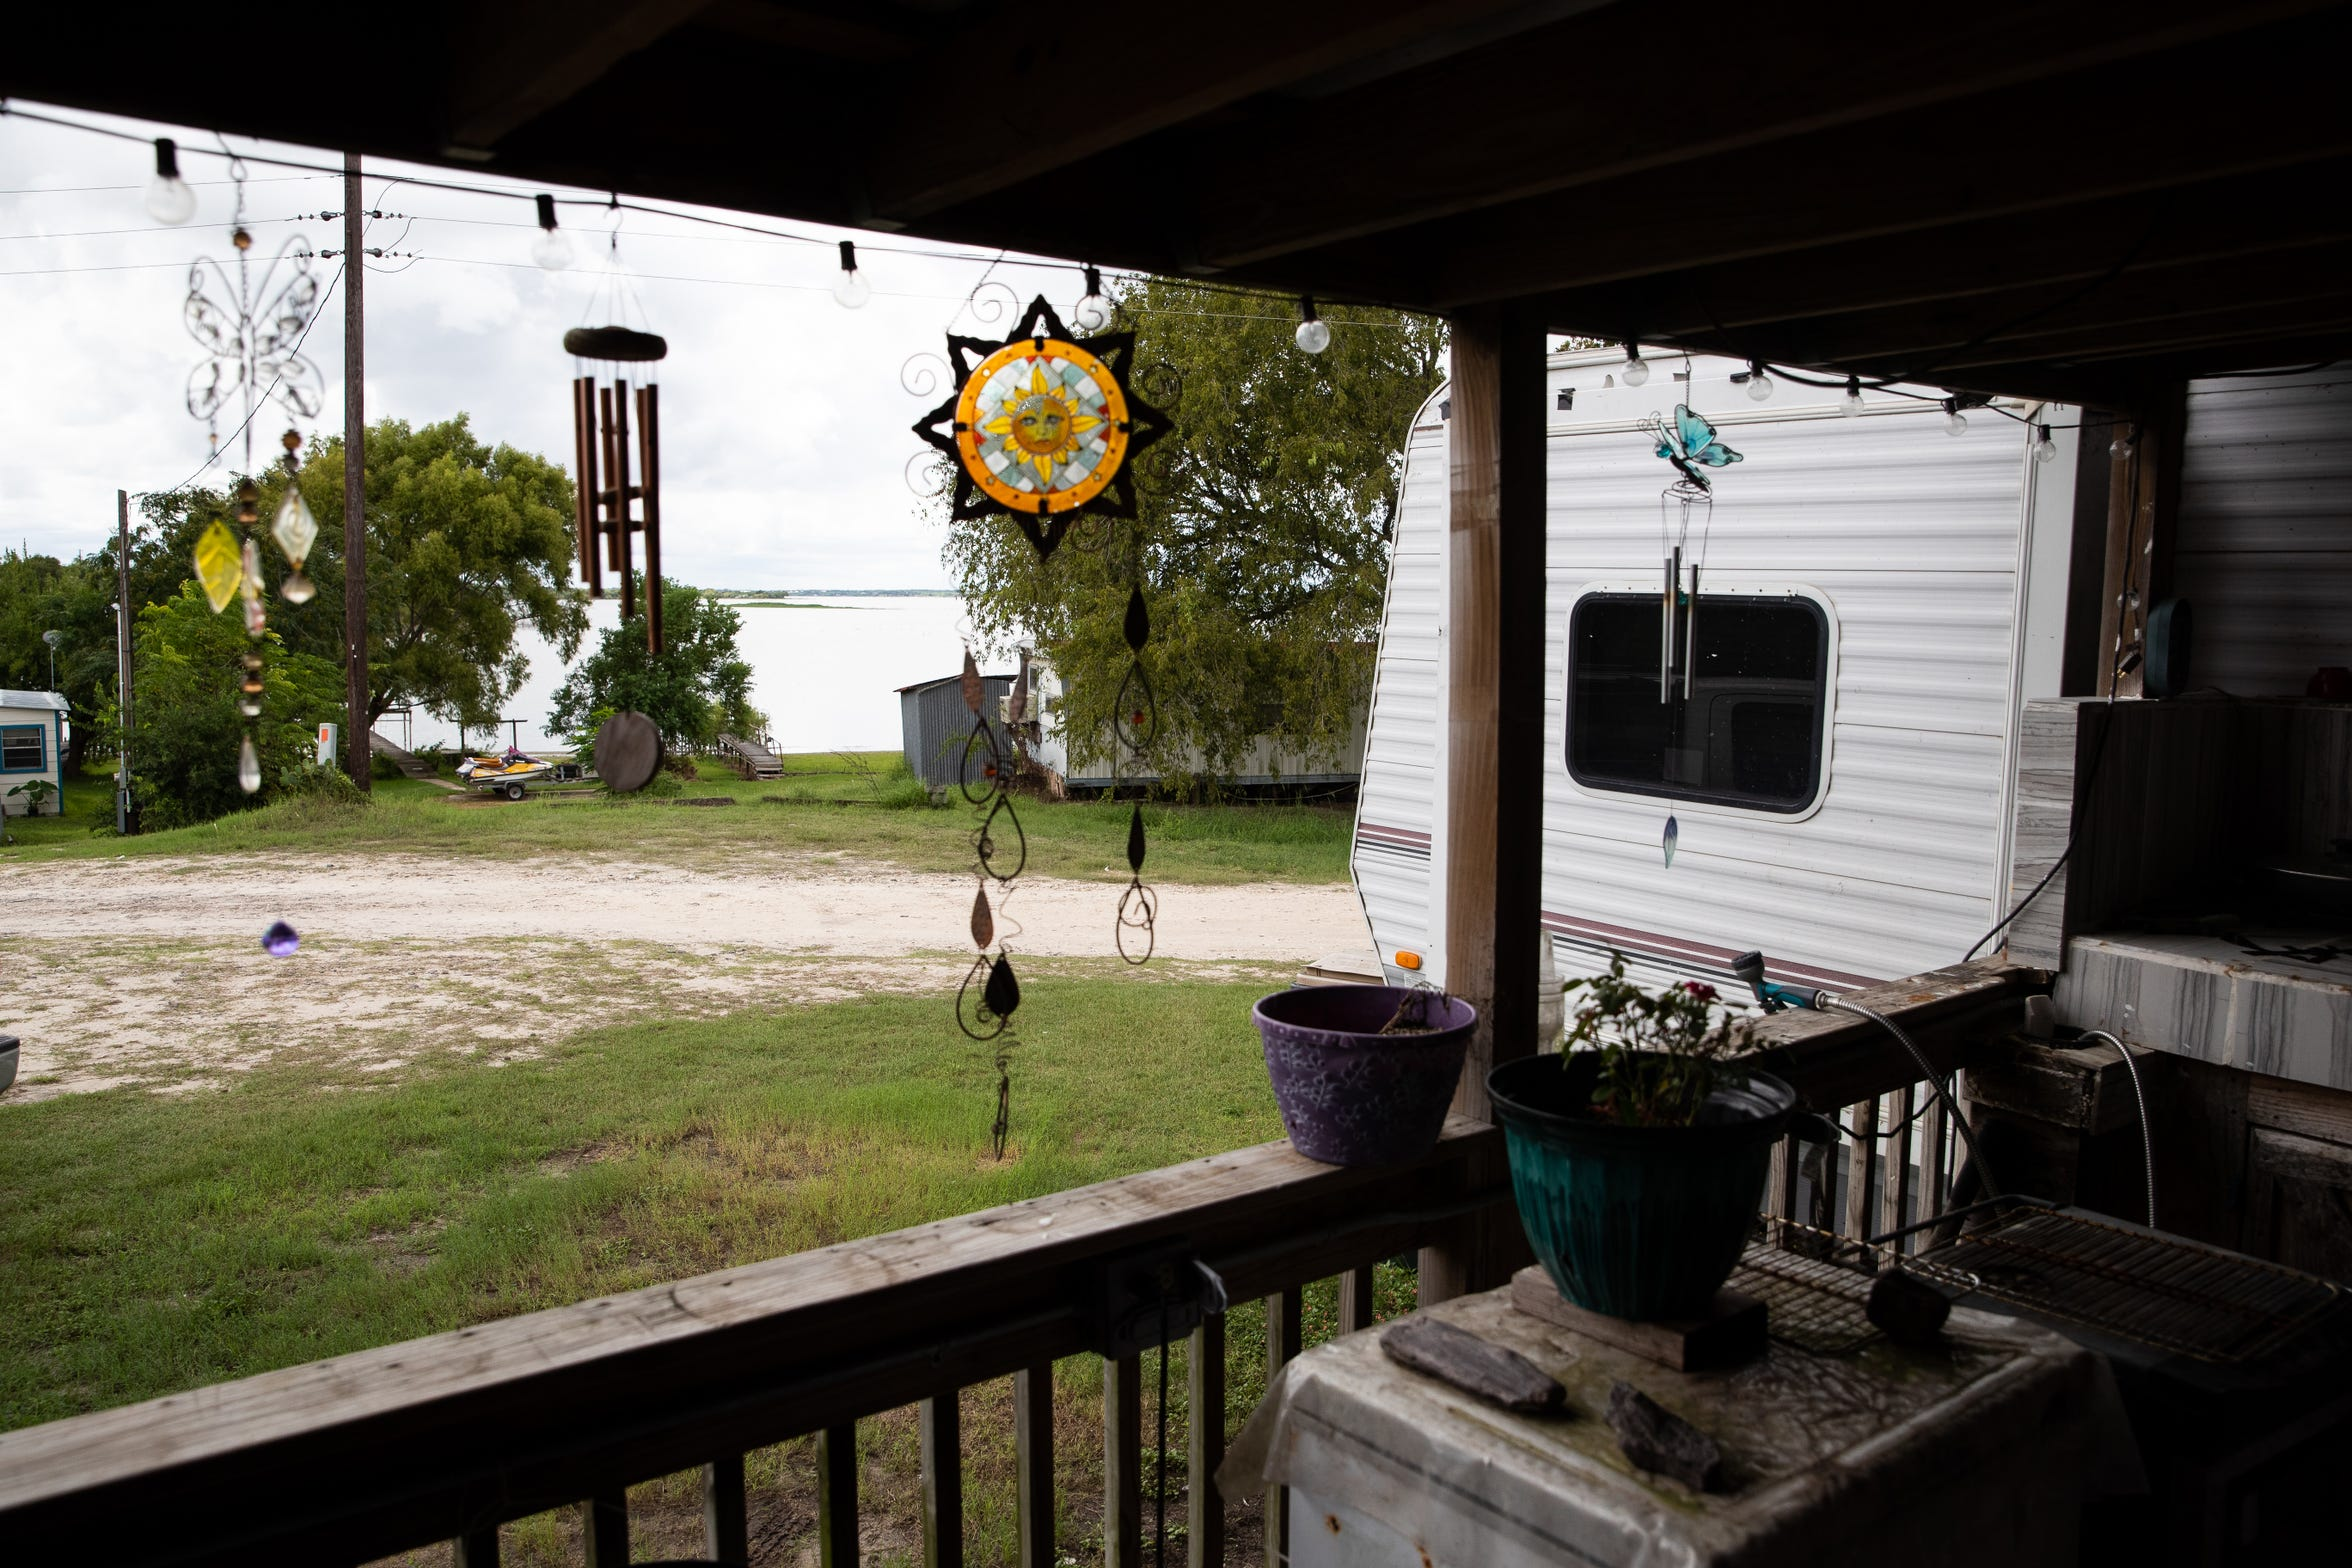 Lake Corpus Christi is seen from the deck of Lesley Jones' home in the Hideaway Hills Subdivision north of Mathis on Wednesday, Sept. 12, 2018. In the last two years, more than 50 cats and dogs have died in what residents believe is an act of intentional poisoning.